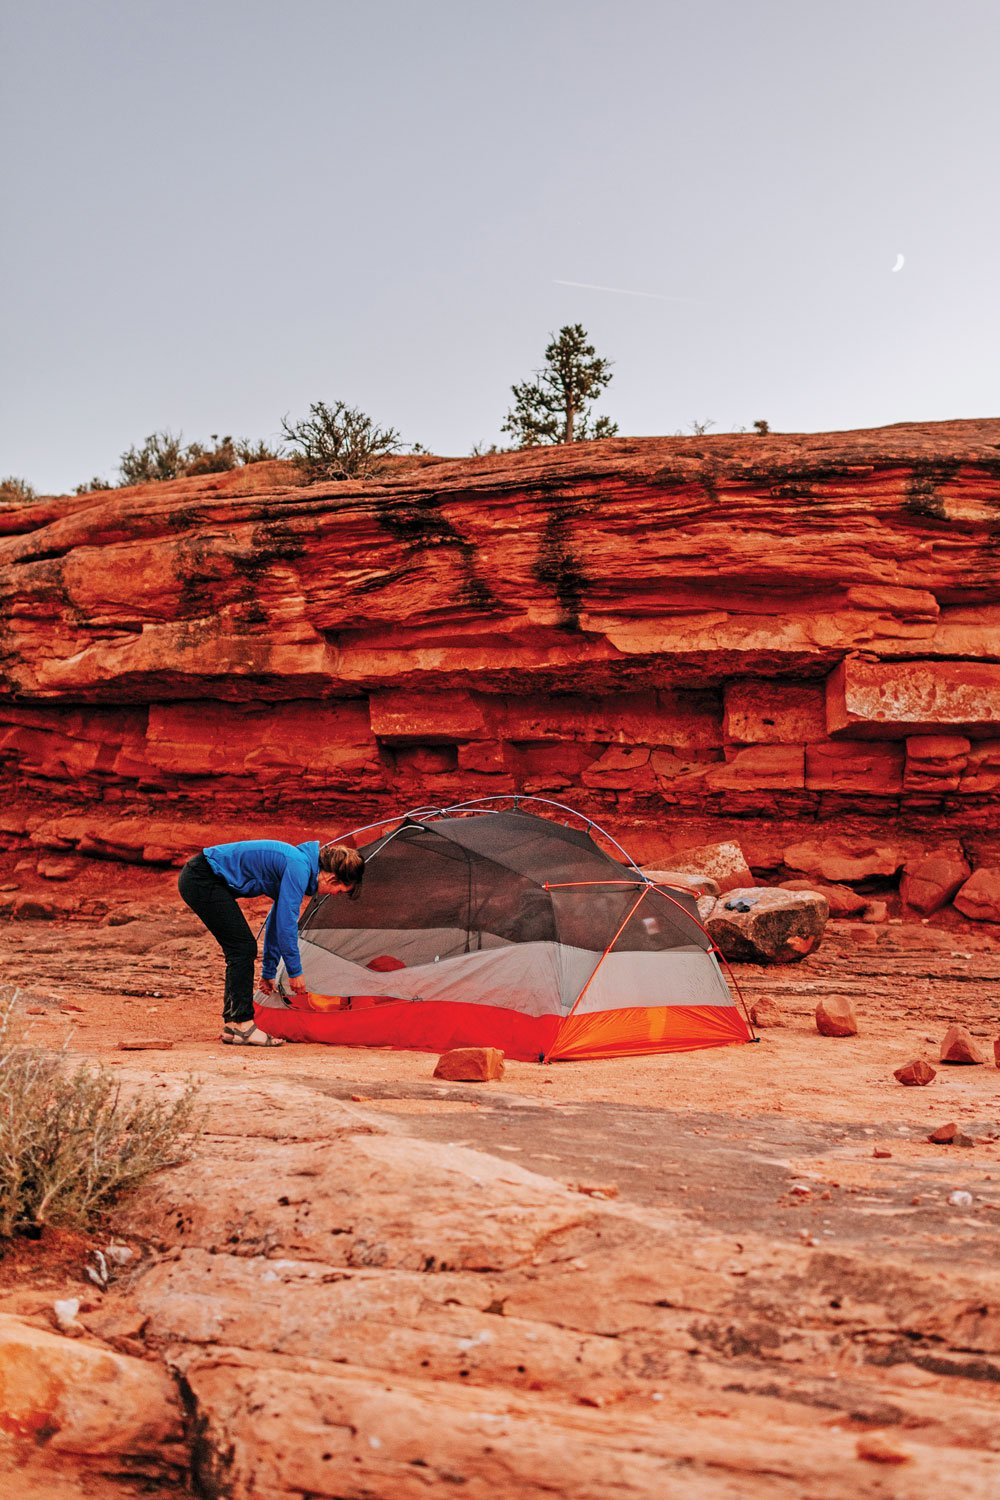 Slick Rock Sandstone makes an ideal camp spot